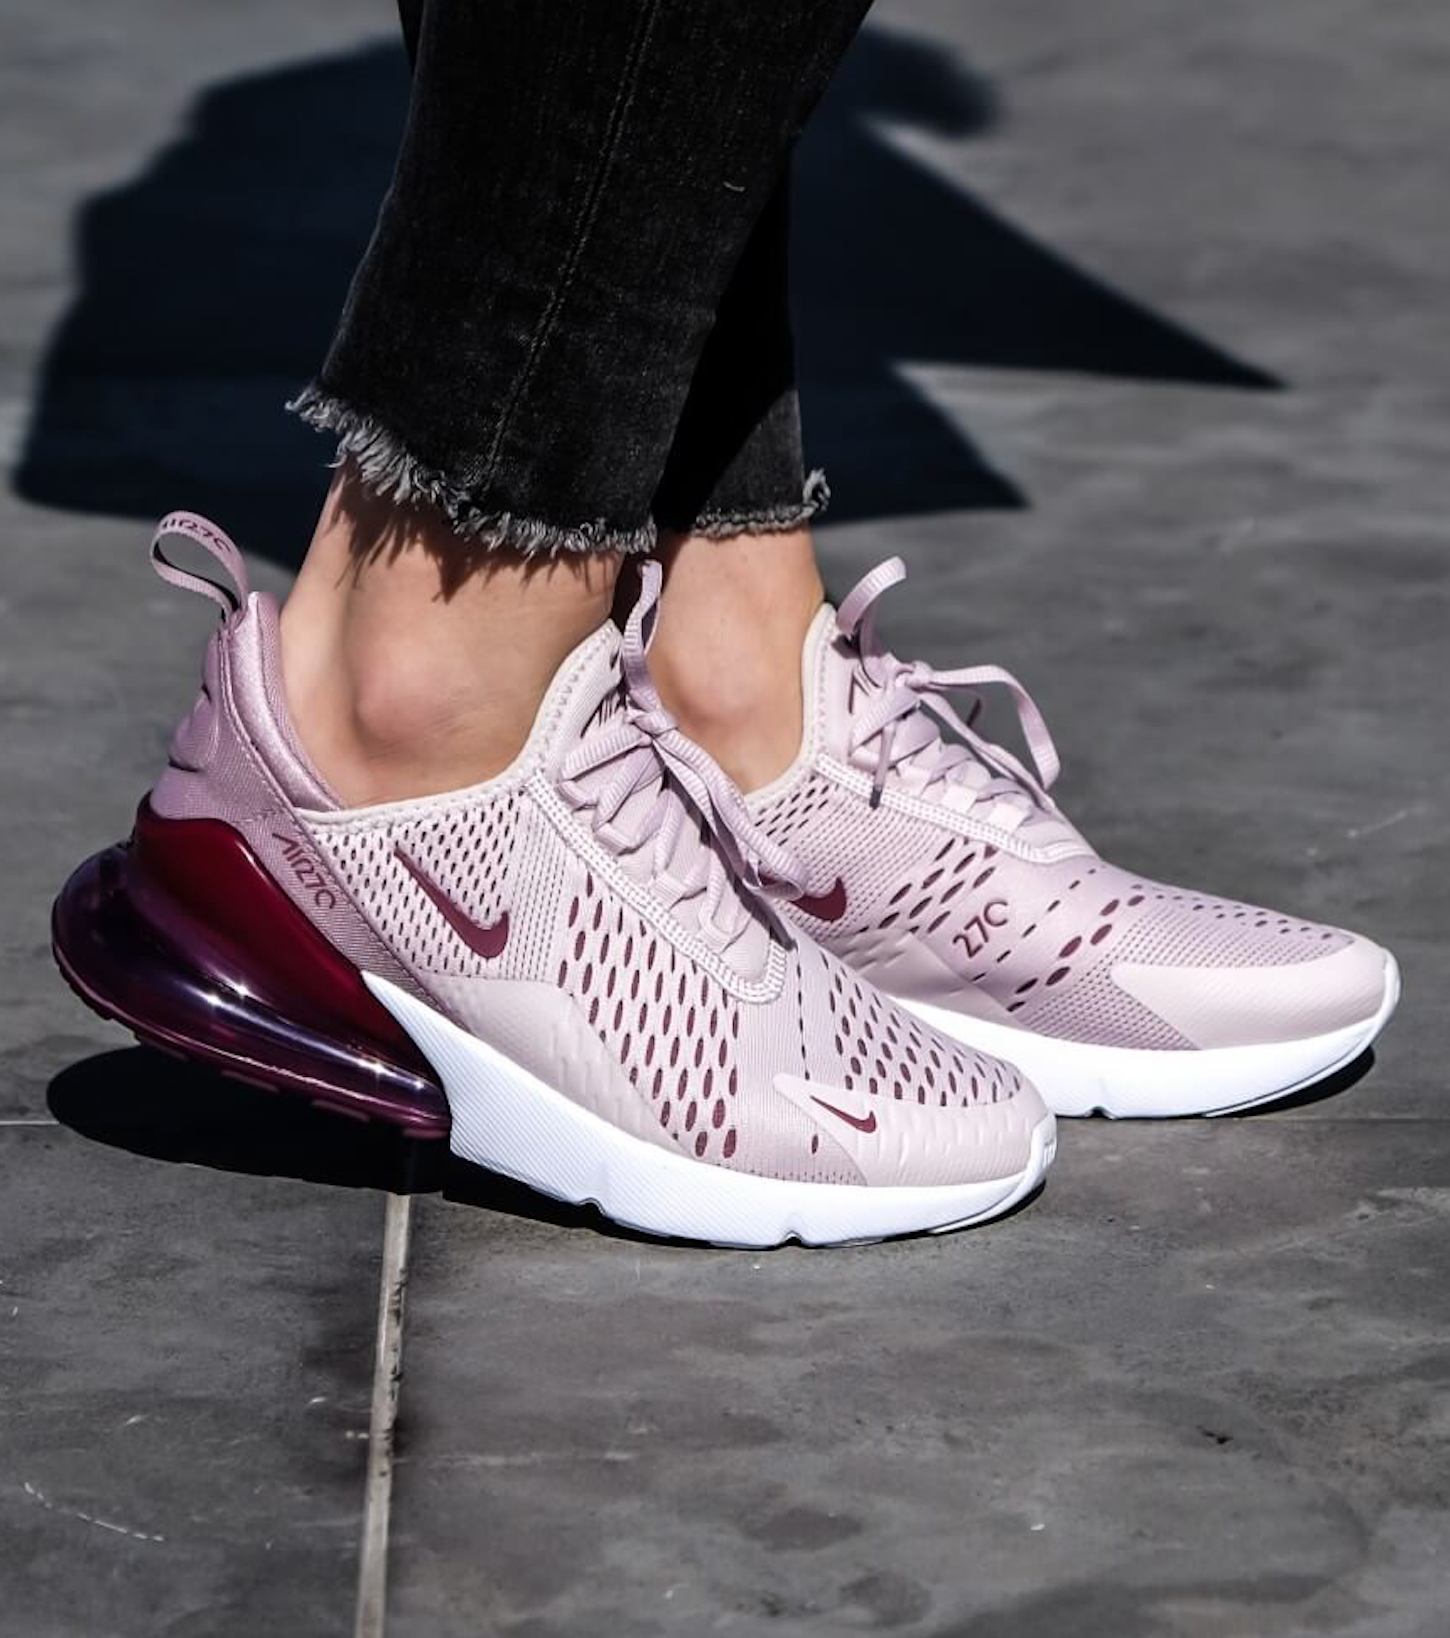 2018 Nike Air Max 270 Womens Shoe in a Barely Rose colour. Stylish Nike  sneakers worn with black jeans. 347f47488